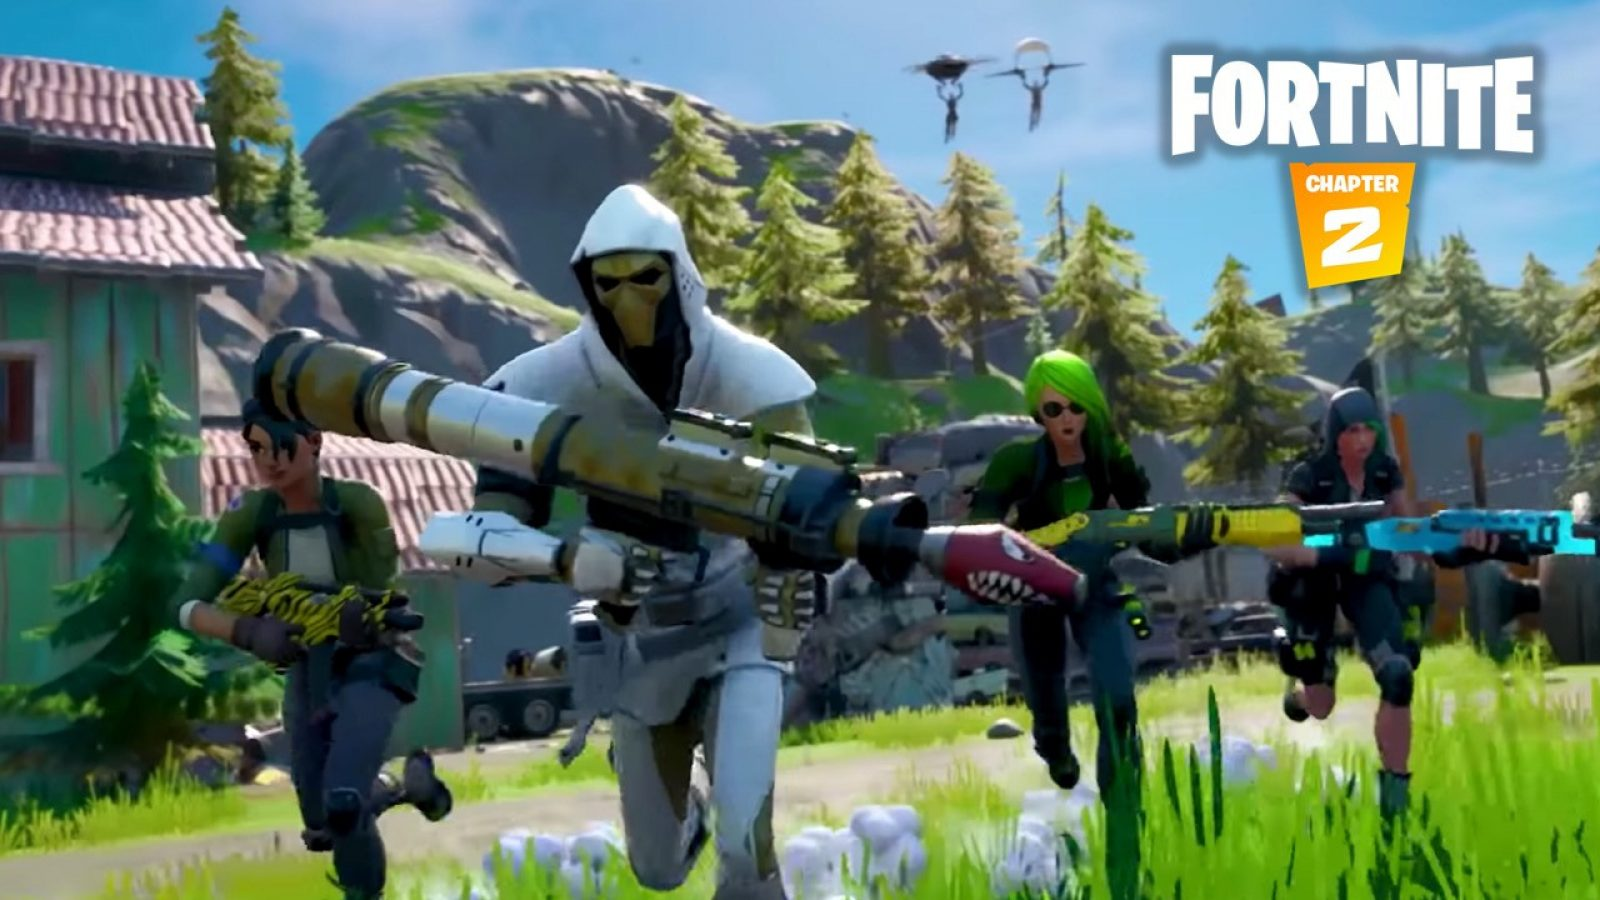 Fortnite players running with weapons